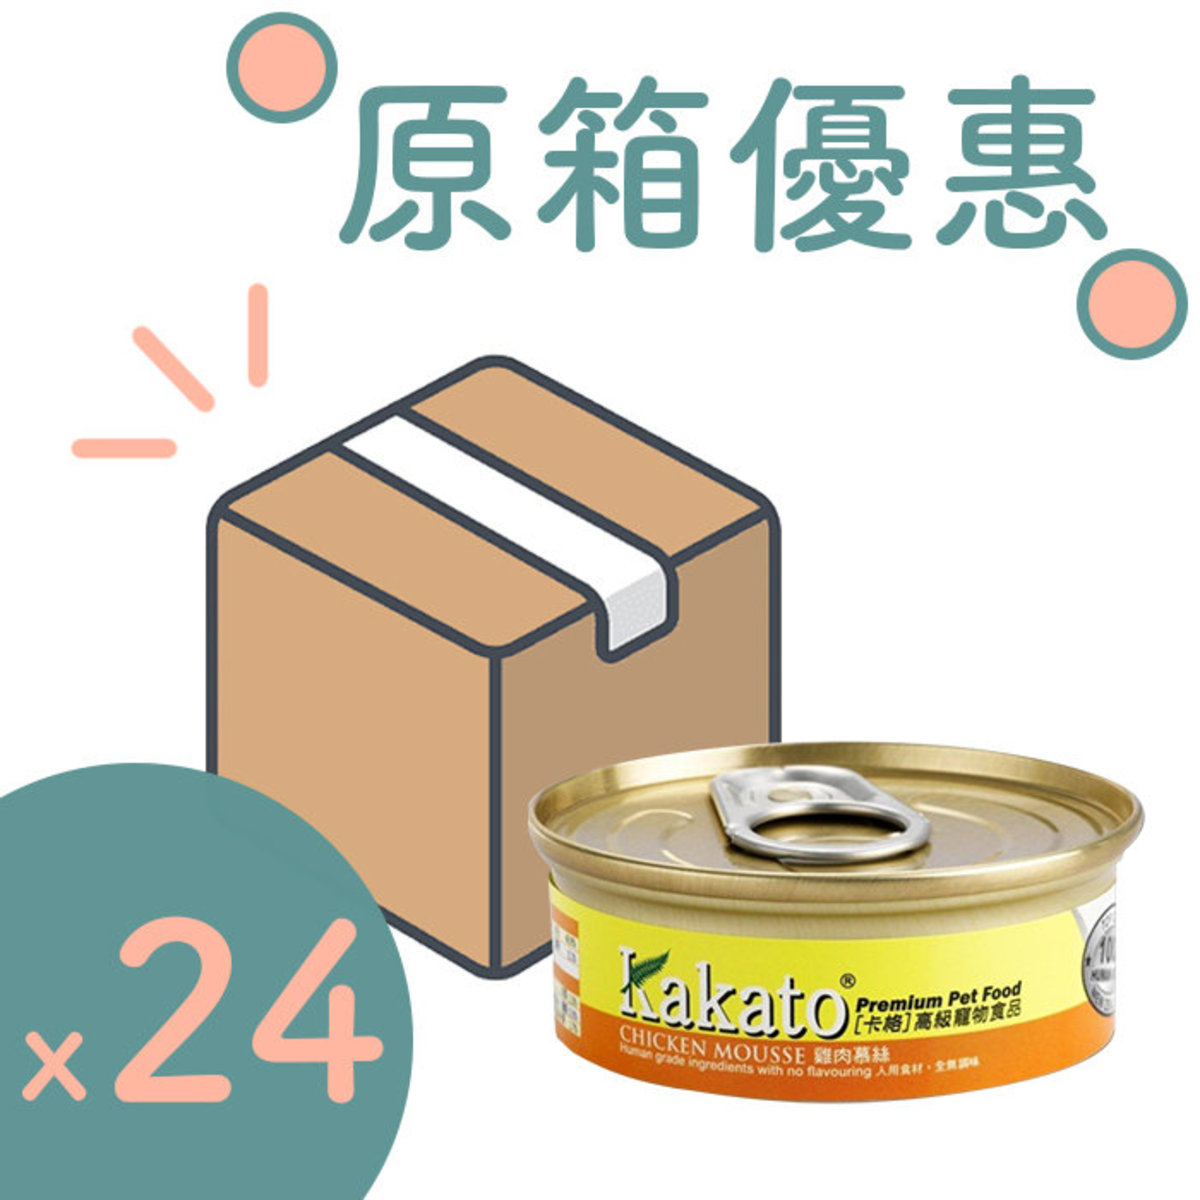 [24PCS SET] Cat Dog Canned Chicken Mousse 40g